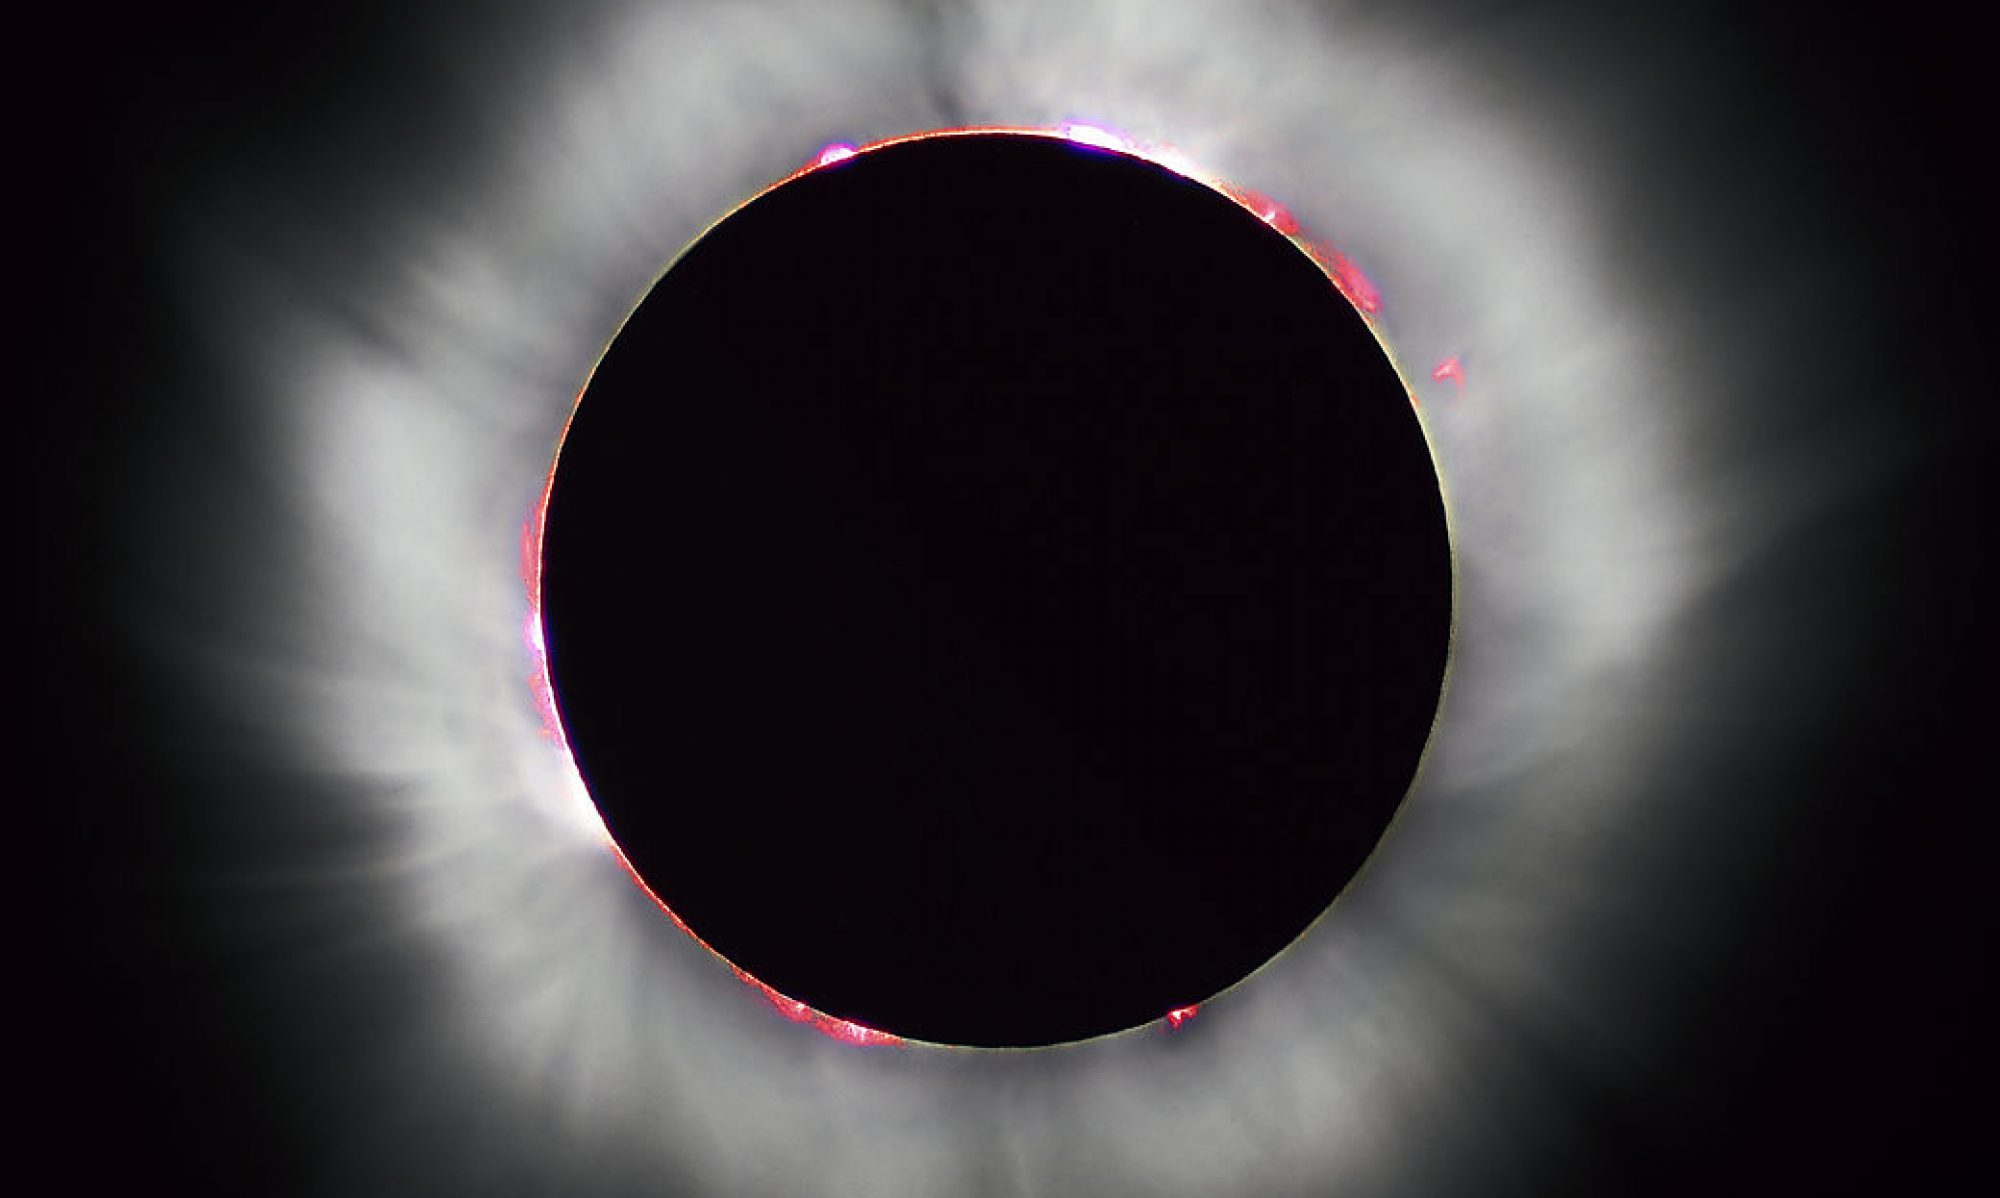 Malapert Solar Eclipse Expedition